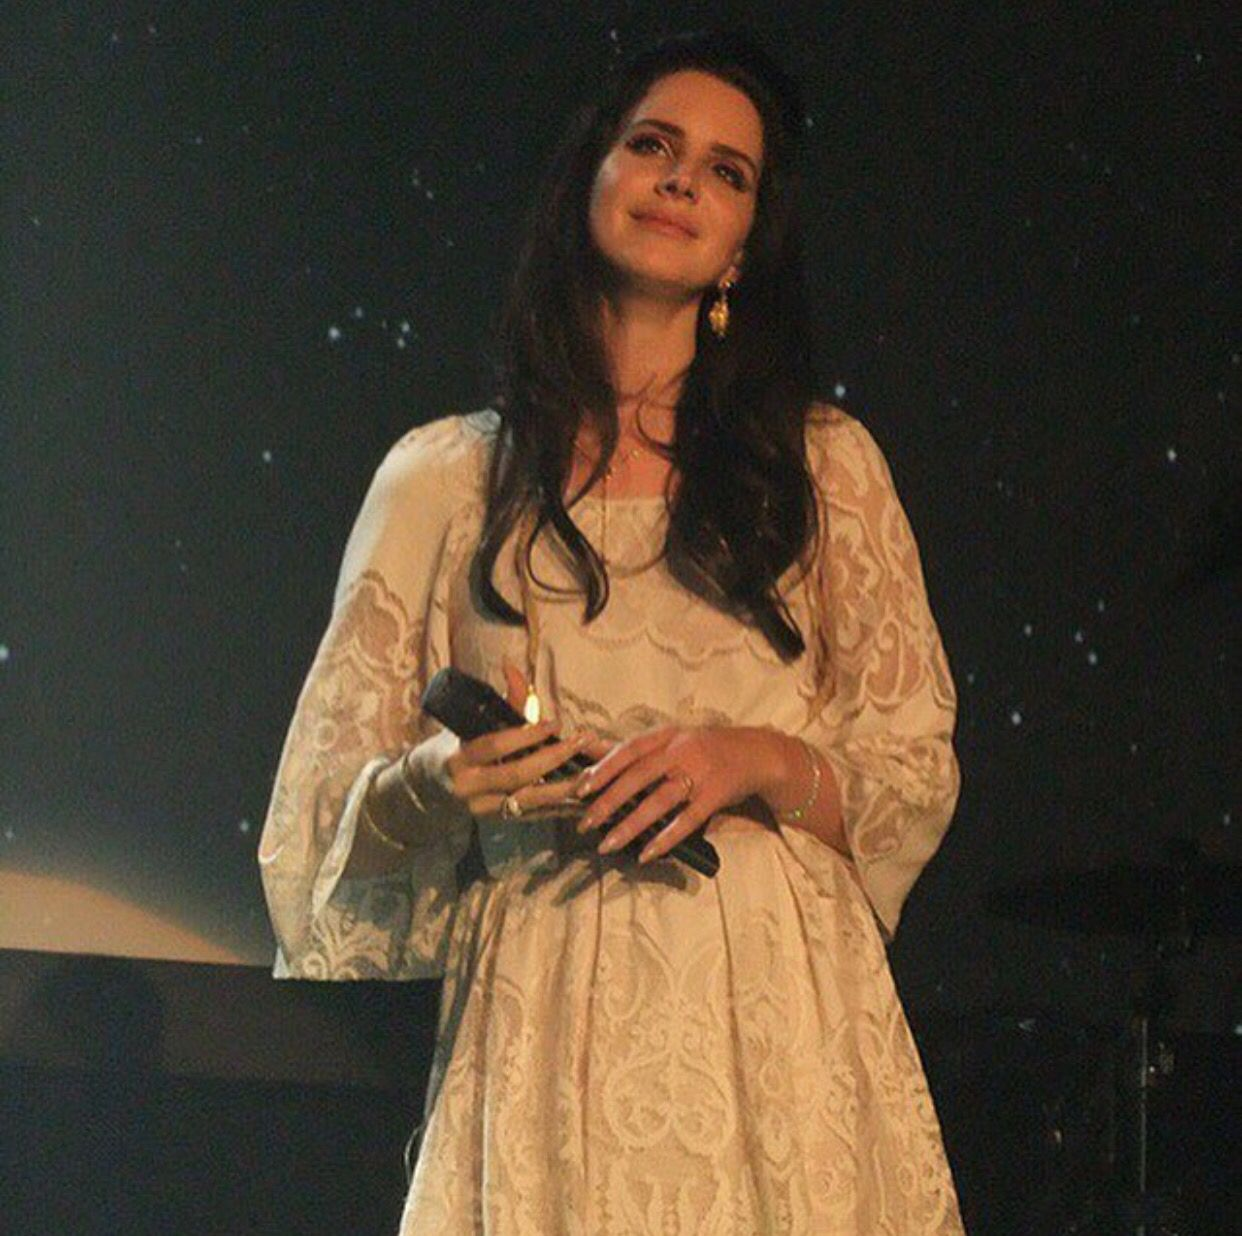 26 Times Lana Del Rey Looked Young And Beautiful | Nice